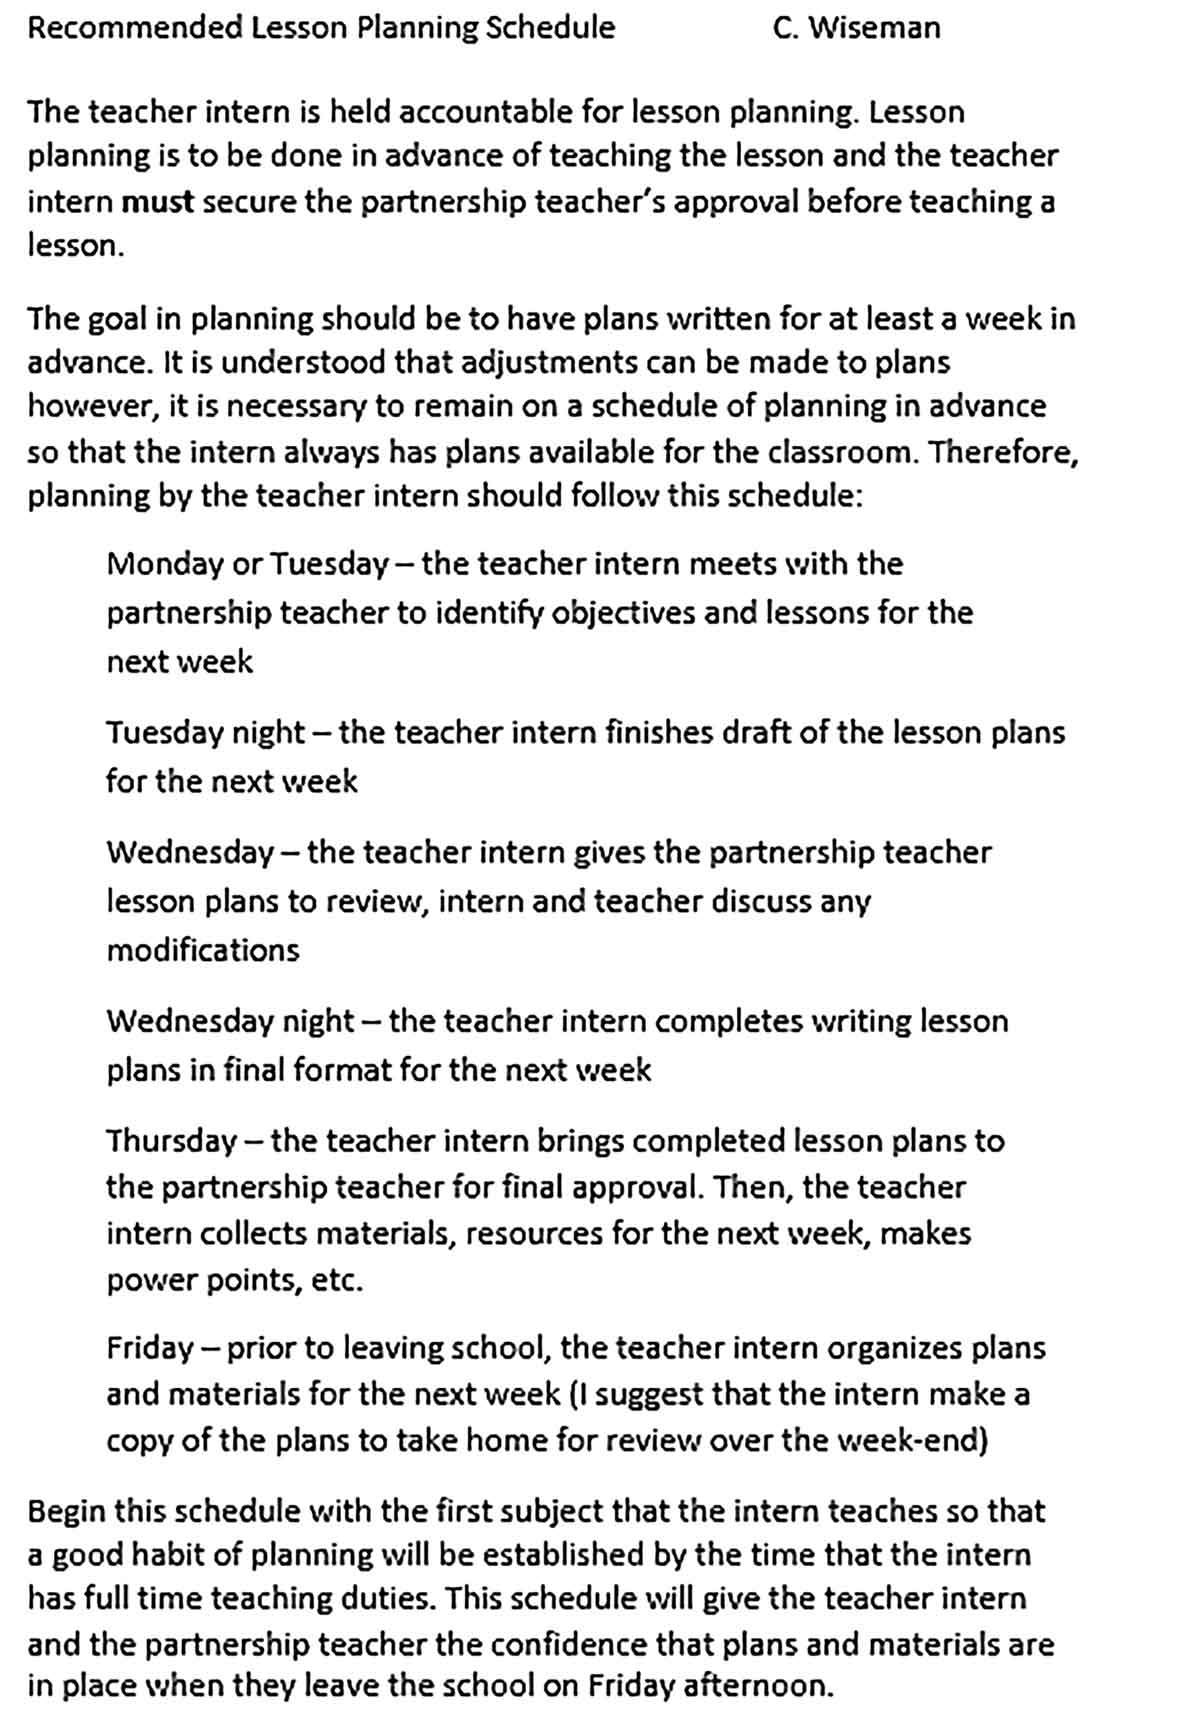 Template Recommended Lesson Planning Schedule Sample